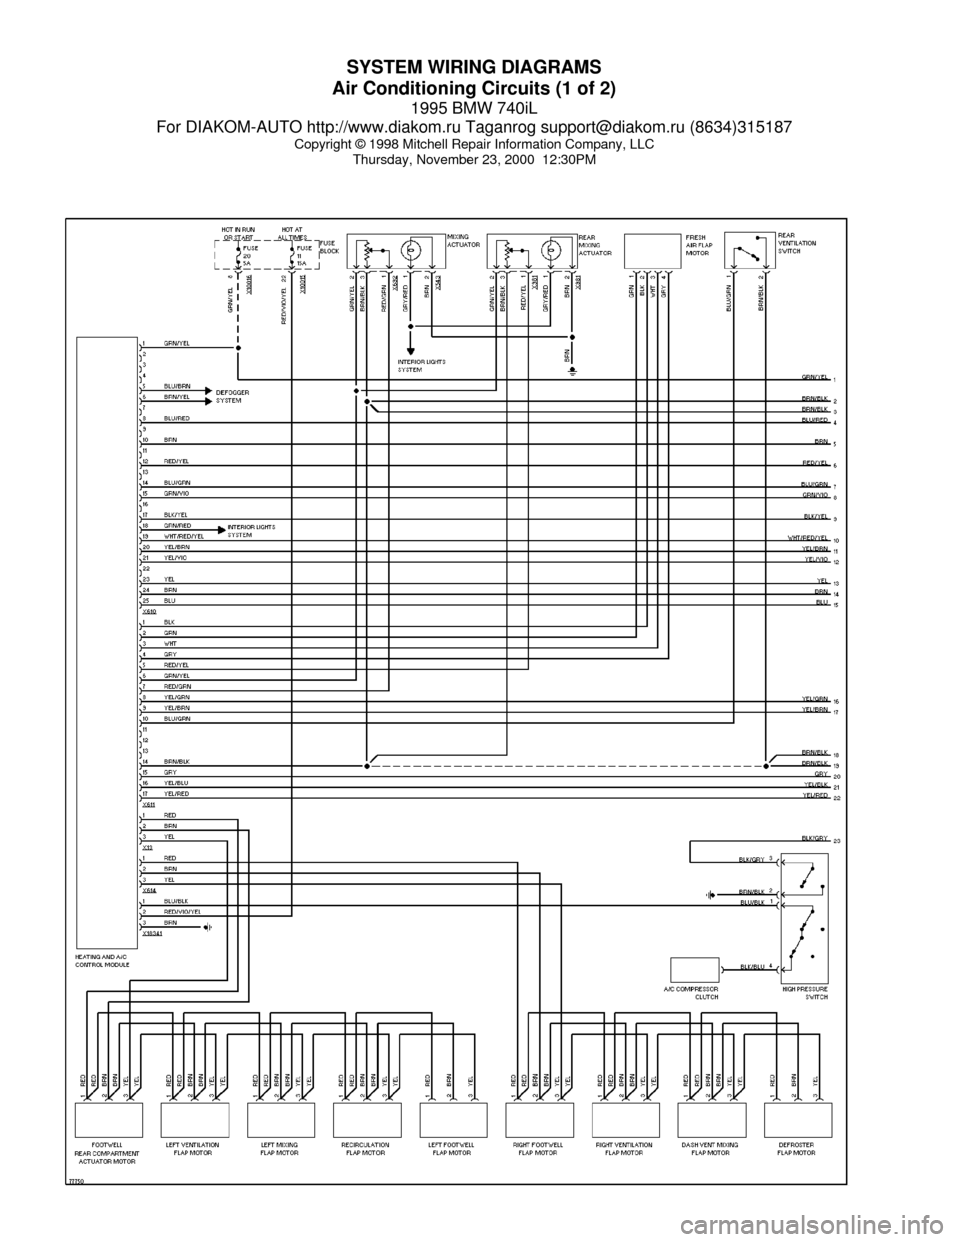 bmw e38 dsp wiring diagram electrical diagrams for dummies 740il 1995 system